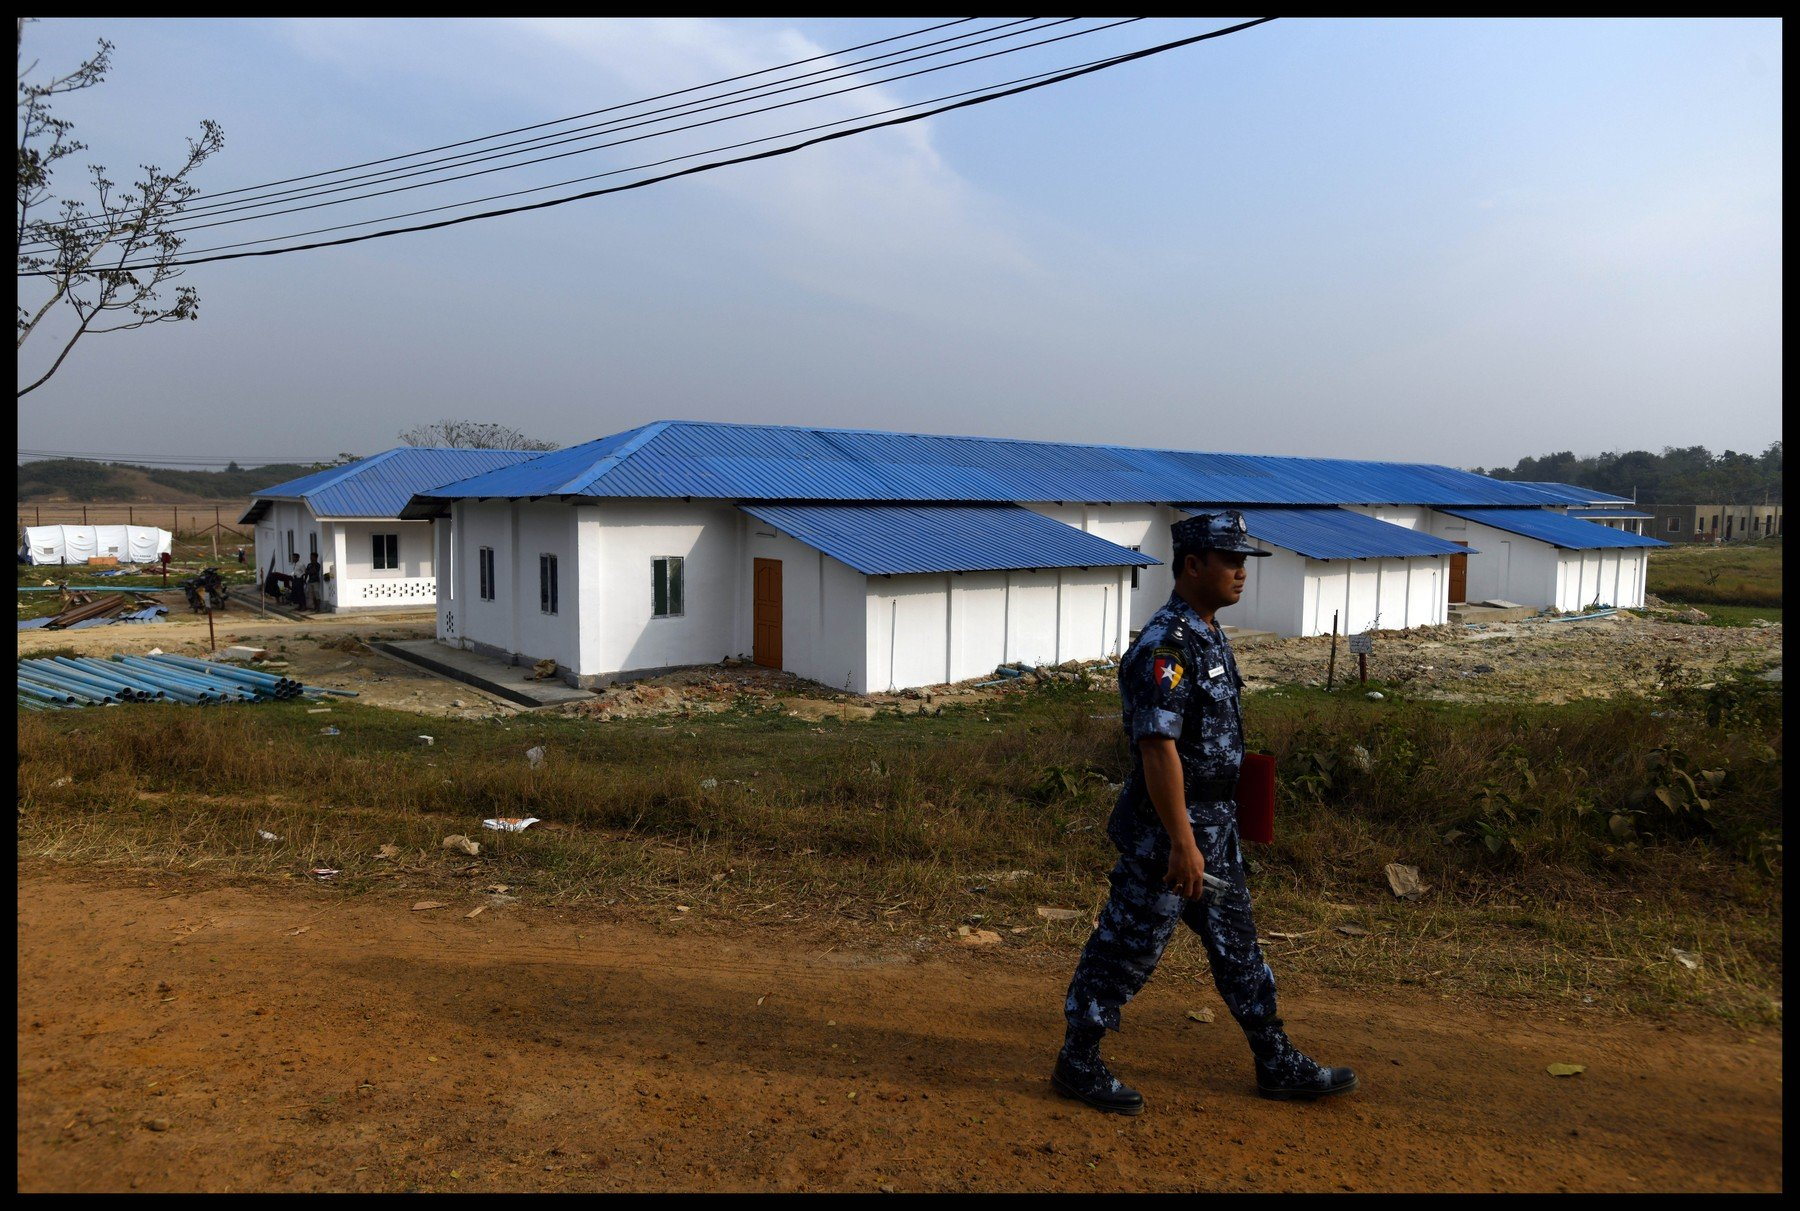 February 11, 2018 - Northern Rakhine, Northern Rakhine, Burma - Northern Rakhine. Images taken February 11th 2018, of A reception centre in Taung Pyo Lat Wae, Northern Rakhine, The centre has been built to house the refugee's once they return from Bangladesh. Rohingya  who have fled Burma to refugee camps in Bangladesh  on the Burma border near Cox's Bazar., Image: 362971452, License: Rights-managed, Restrictions: * China, France, Italy, Spain, Taiwan and UK Rights OUT *, Model Release: no, Credit line: Profimedia, Zuma Press - Archives